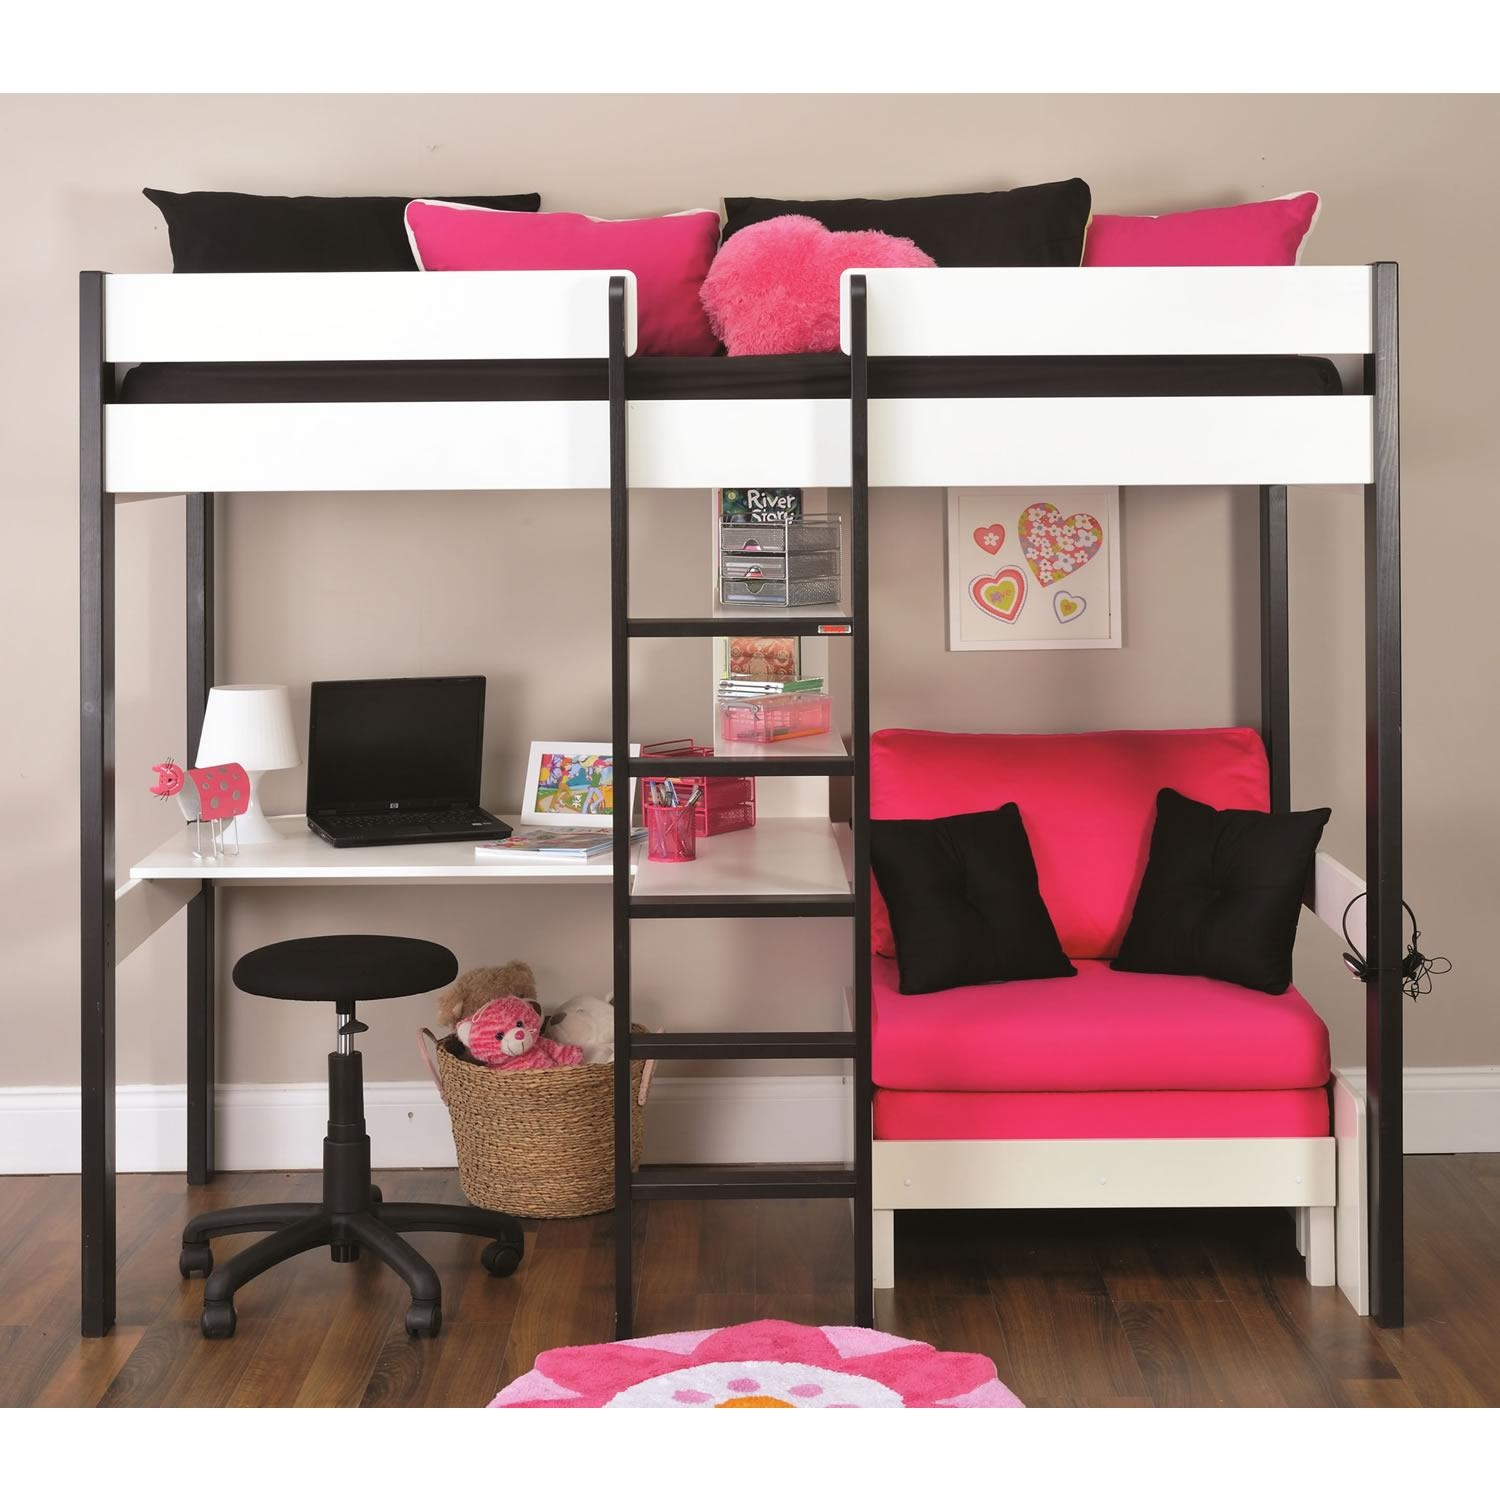 High Sleeper With Desk And Sofa Bed – Ansugallery For High Sleeper With Desk And Sofa (Image 9 of 20)